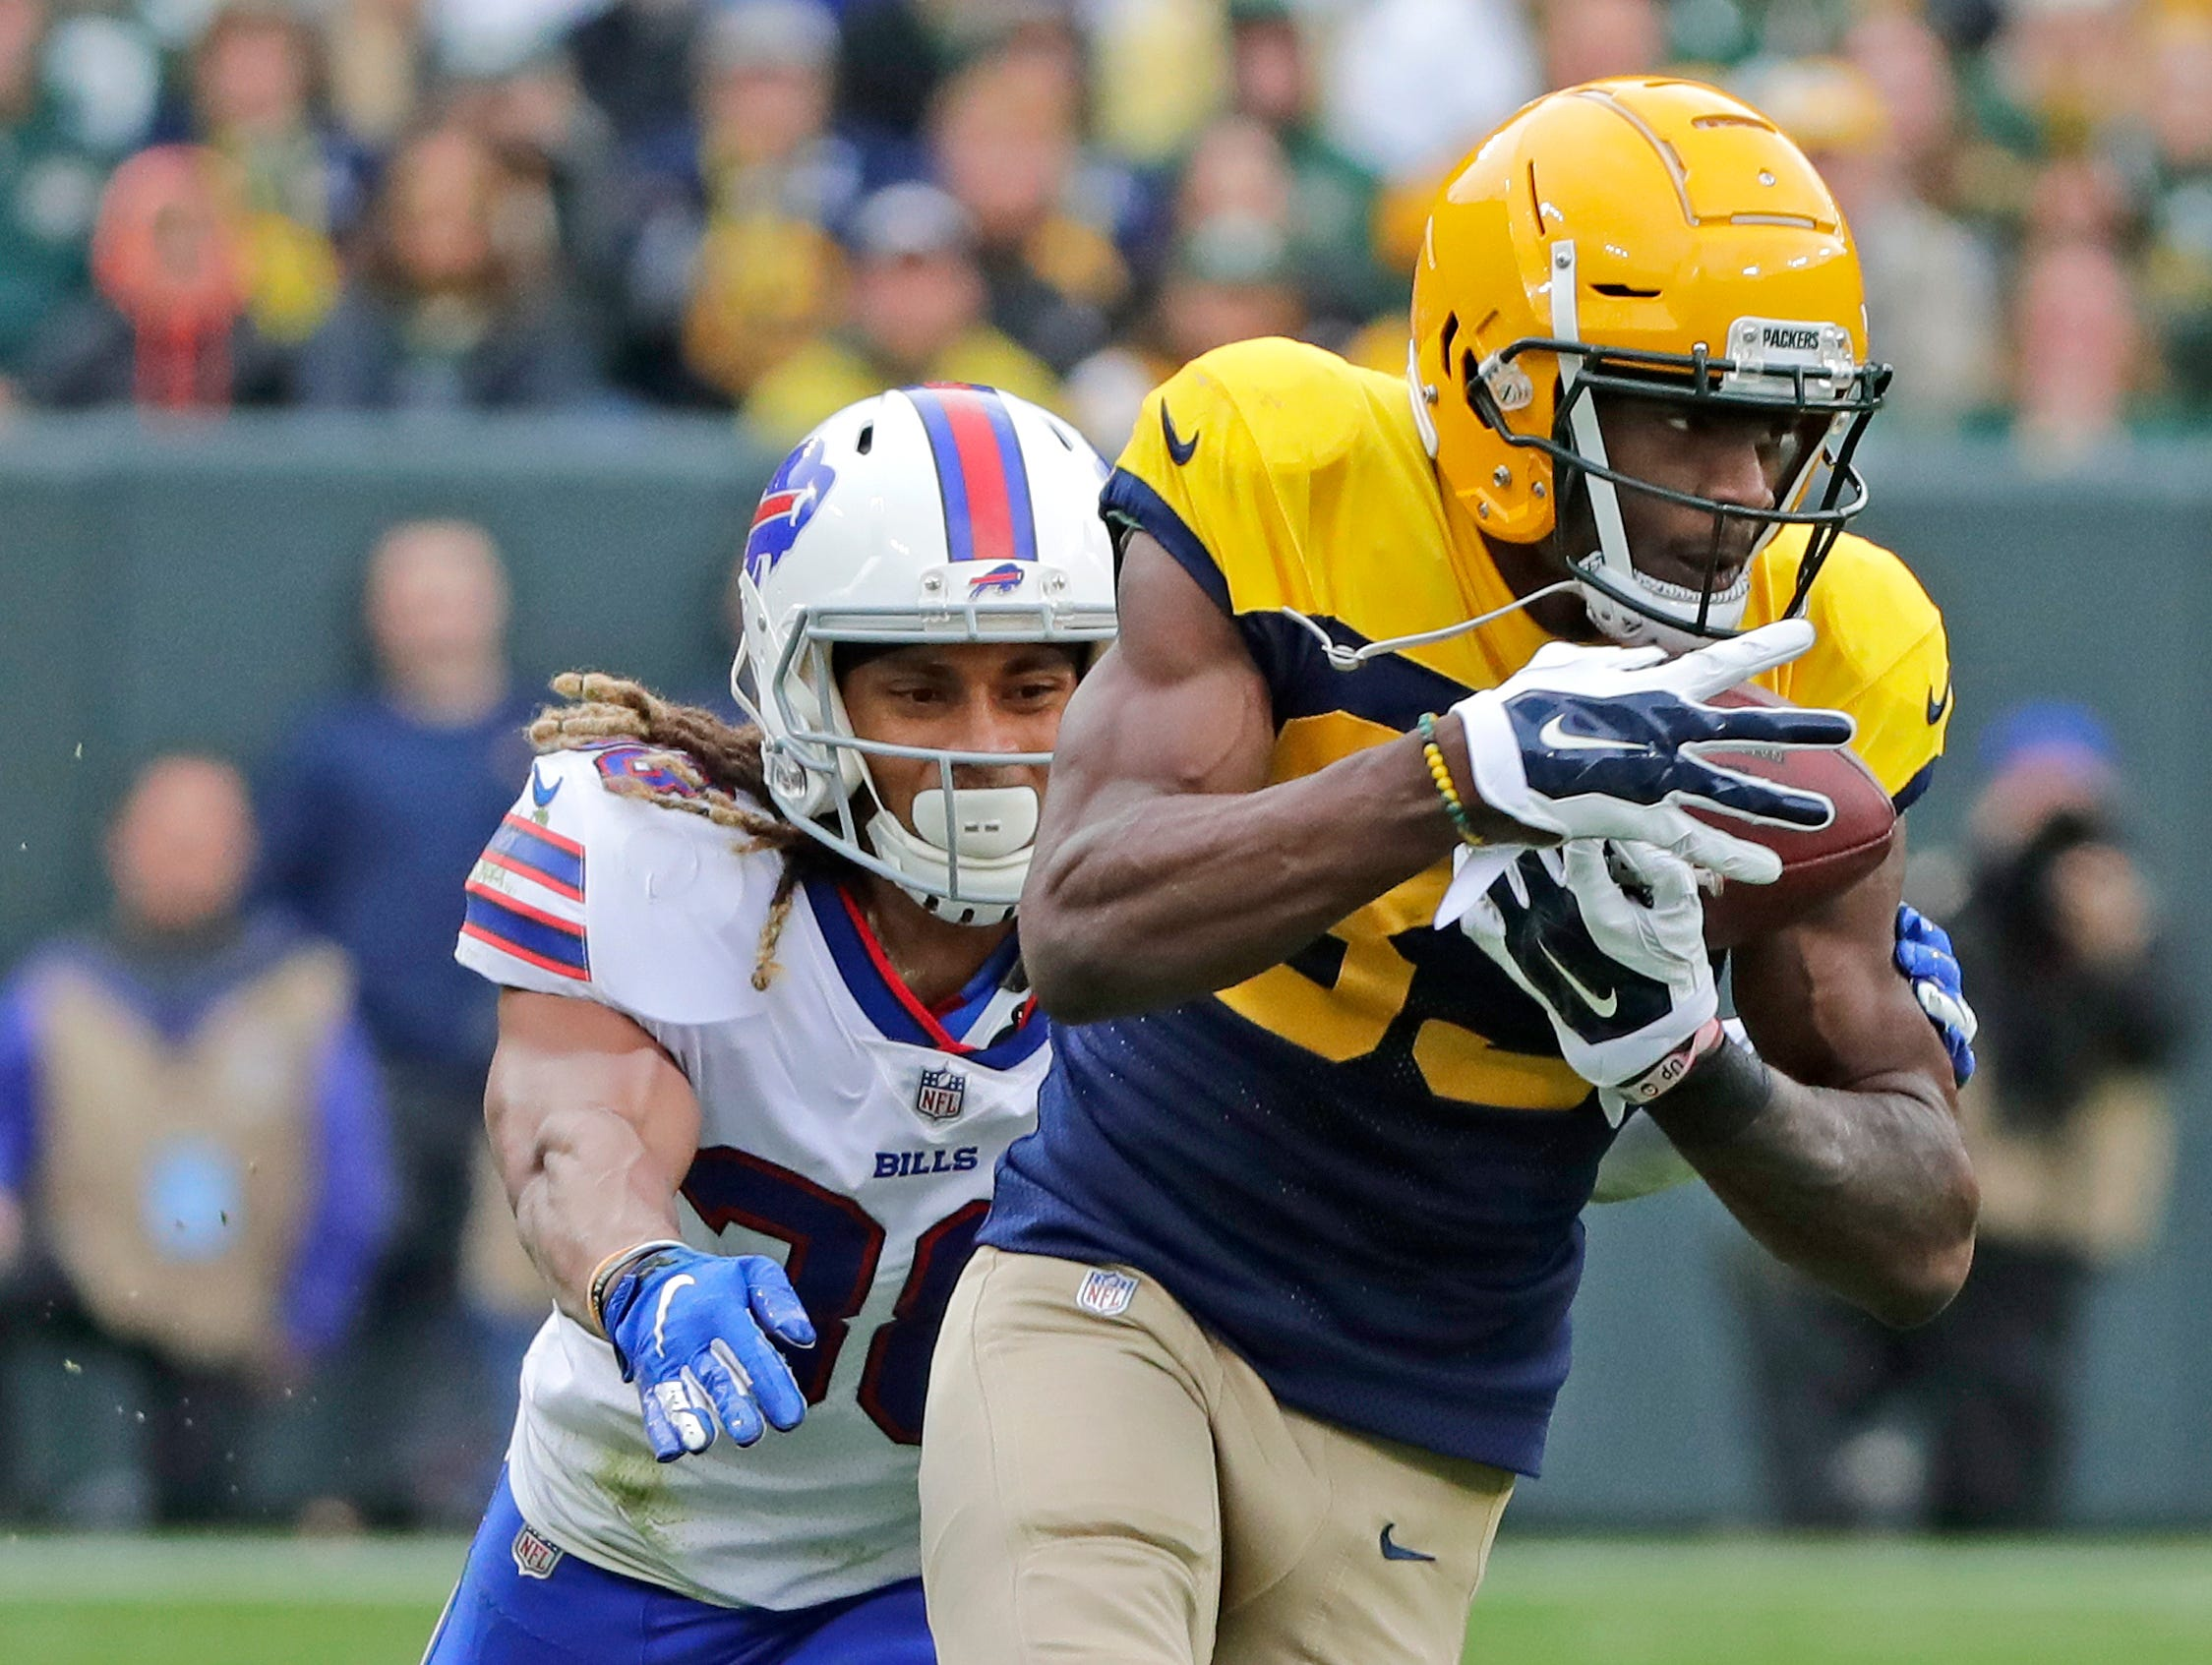 Green Bay Packers wide receiver Marquez Valdes-Scantling (83) makes a catch against the Buffalo Bills in the fourth quarter at Lambeau Field on Sunday, September 30, 2018 in Green Bay, Wis.